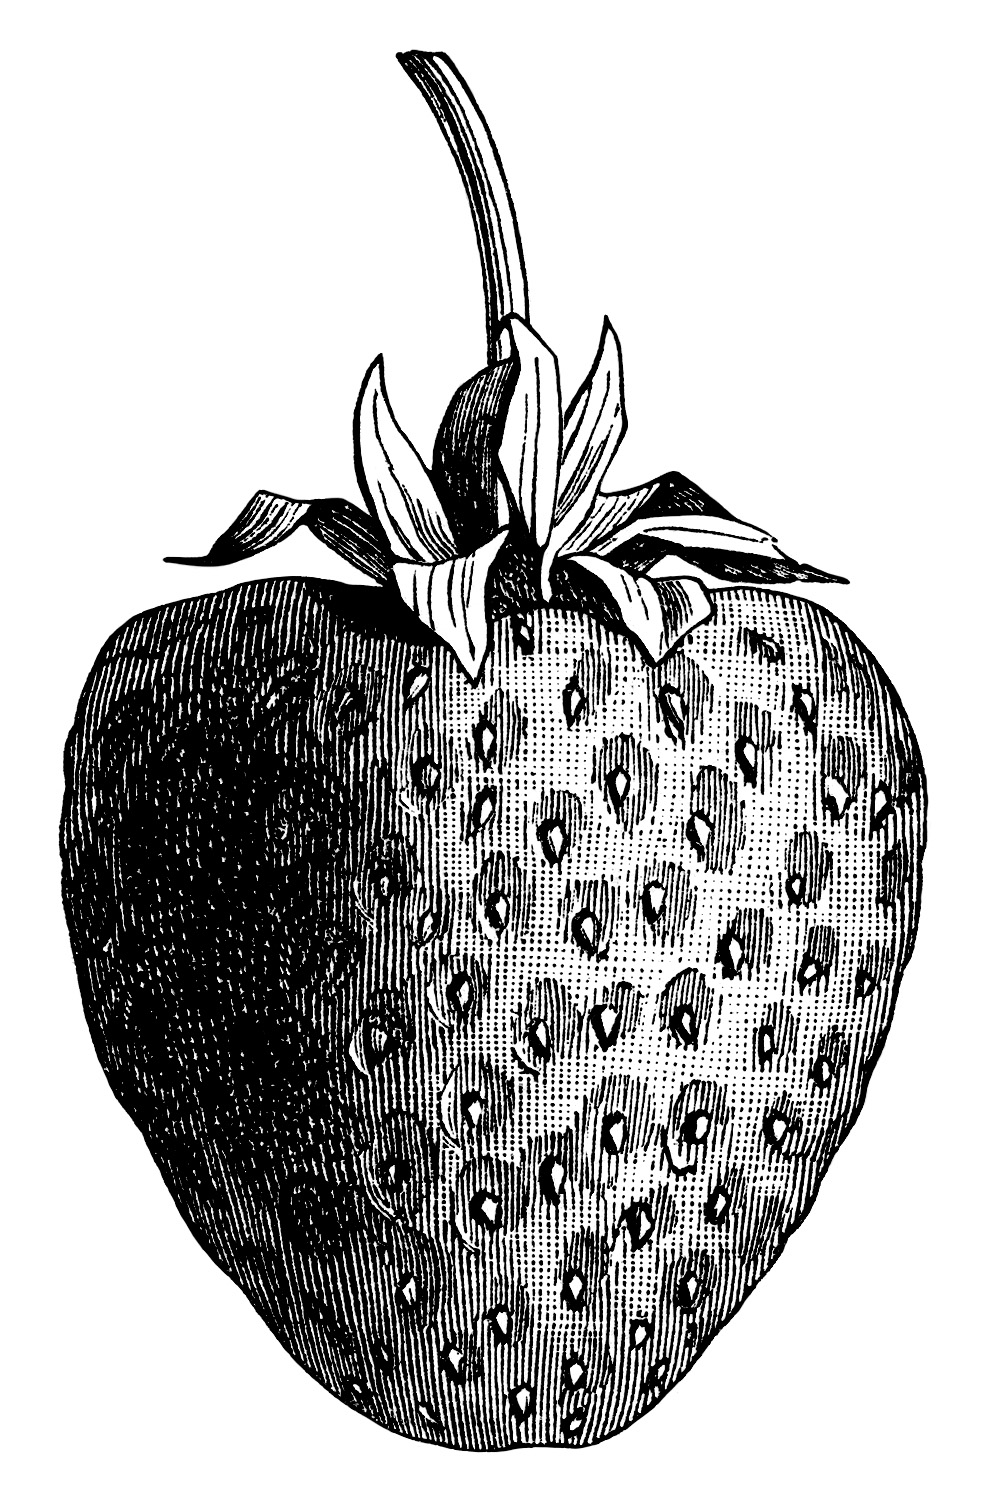 vintage strawberry clip art, black and white graphics, strawberry illustration, printable fruit image, berry digital stamp